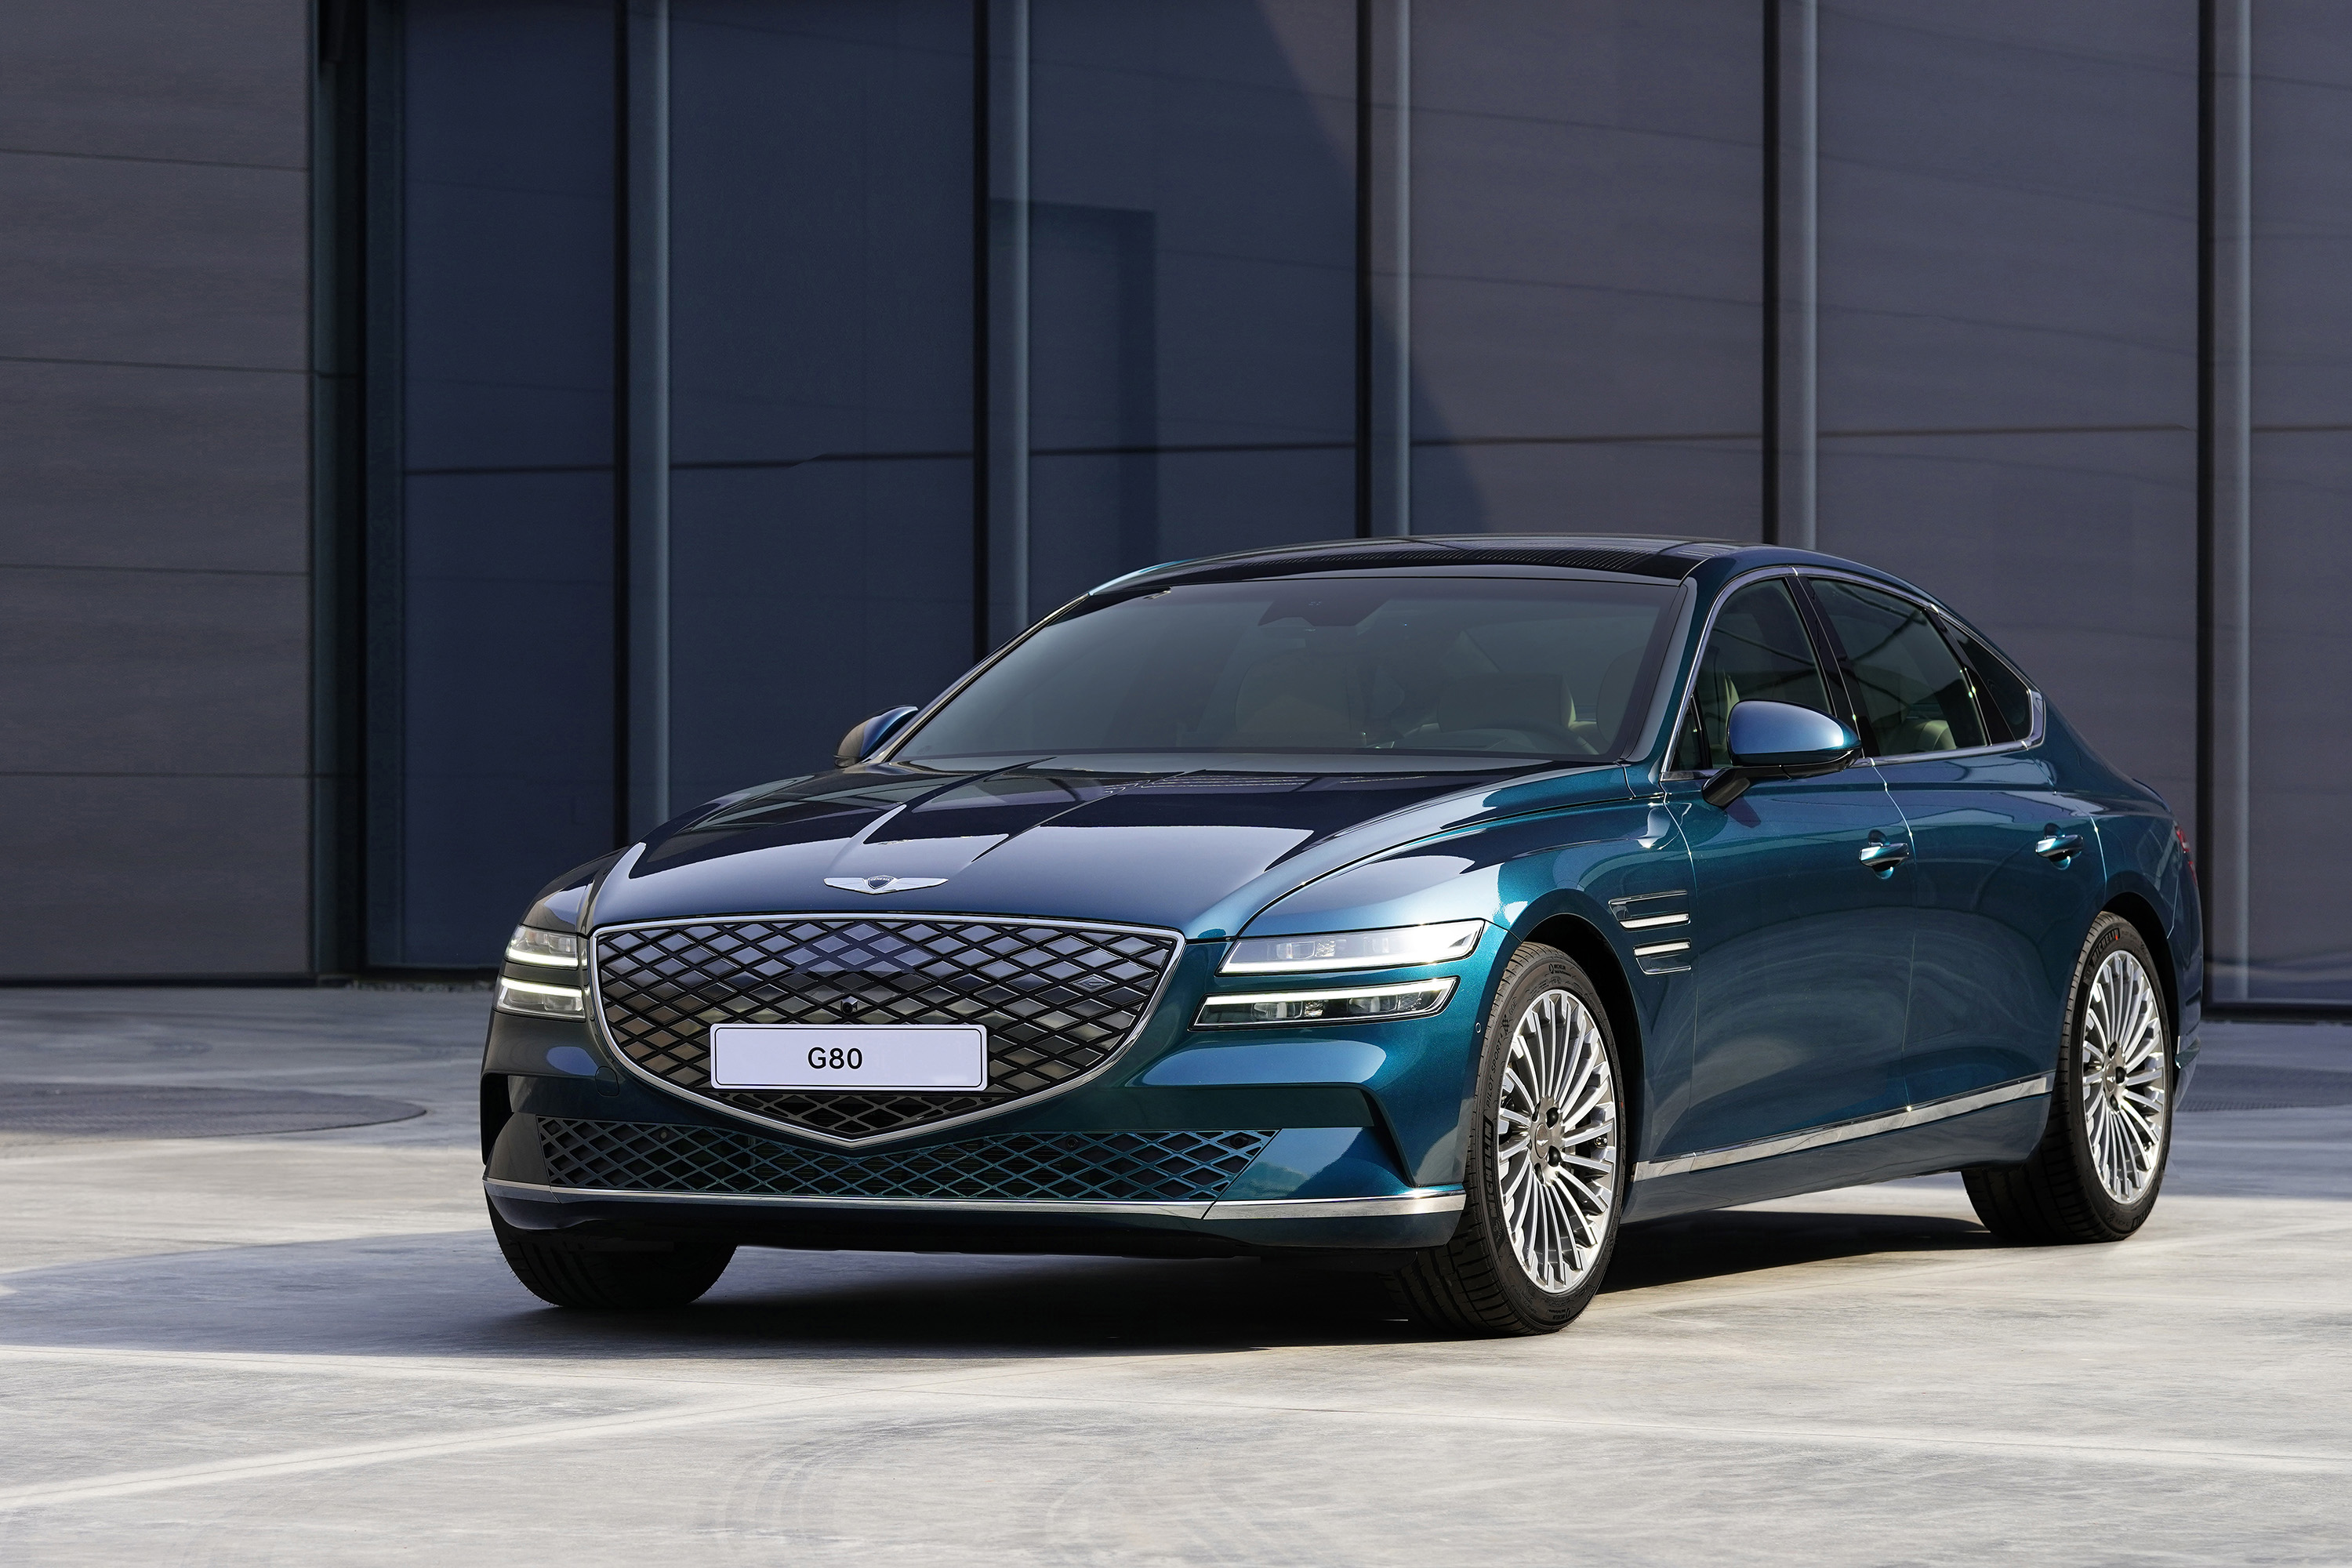 Genesis has taken to Auto Shanghai to reveal an electric version of its G80 luxury sedan